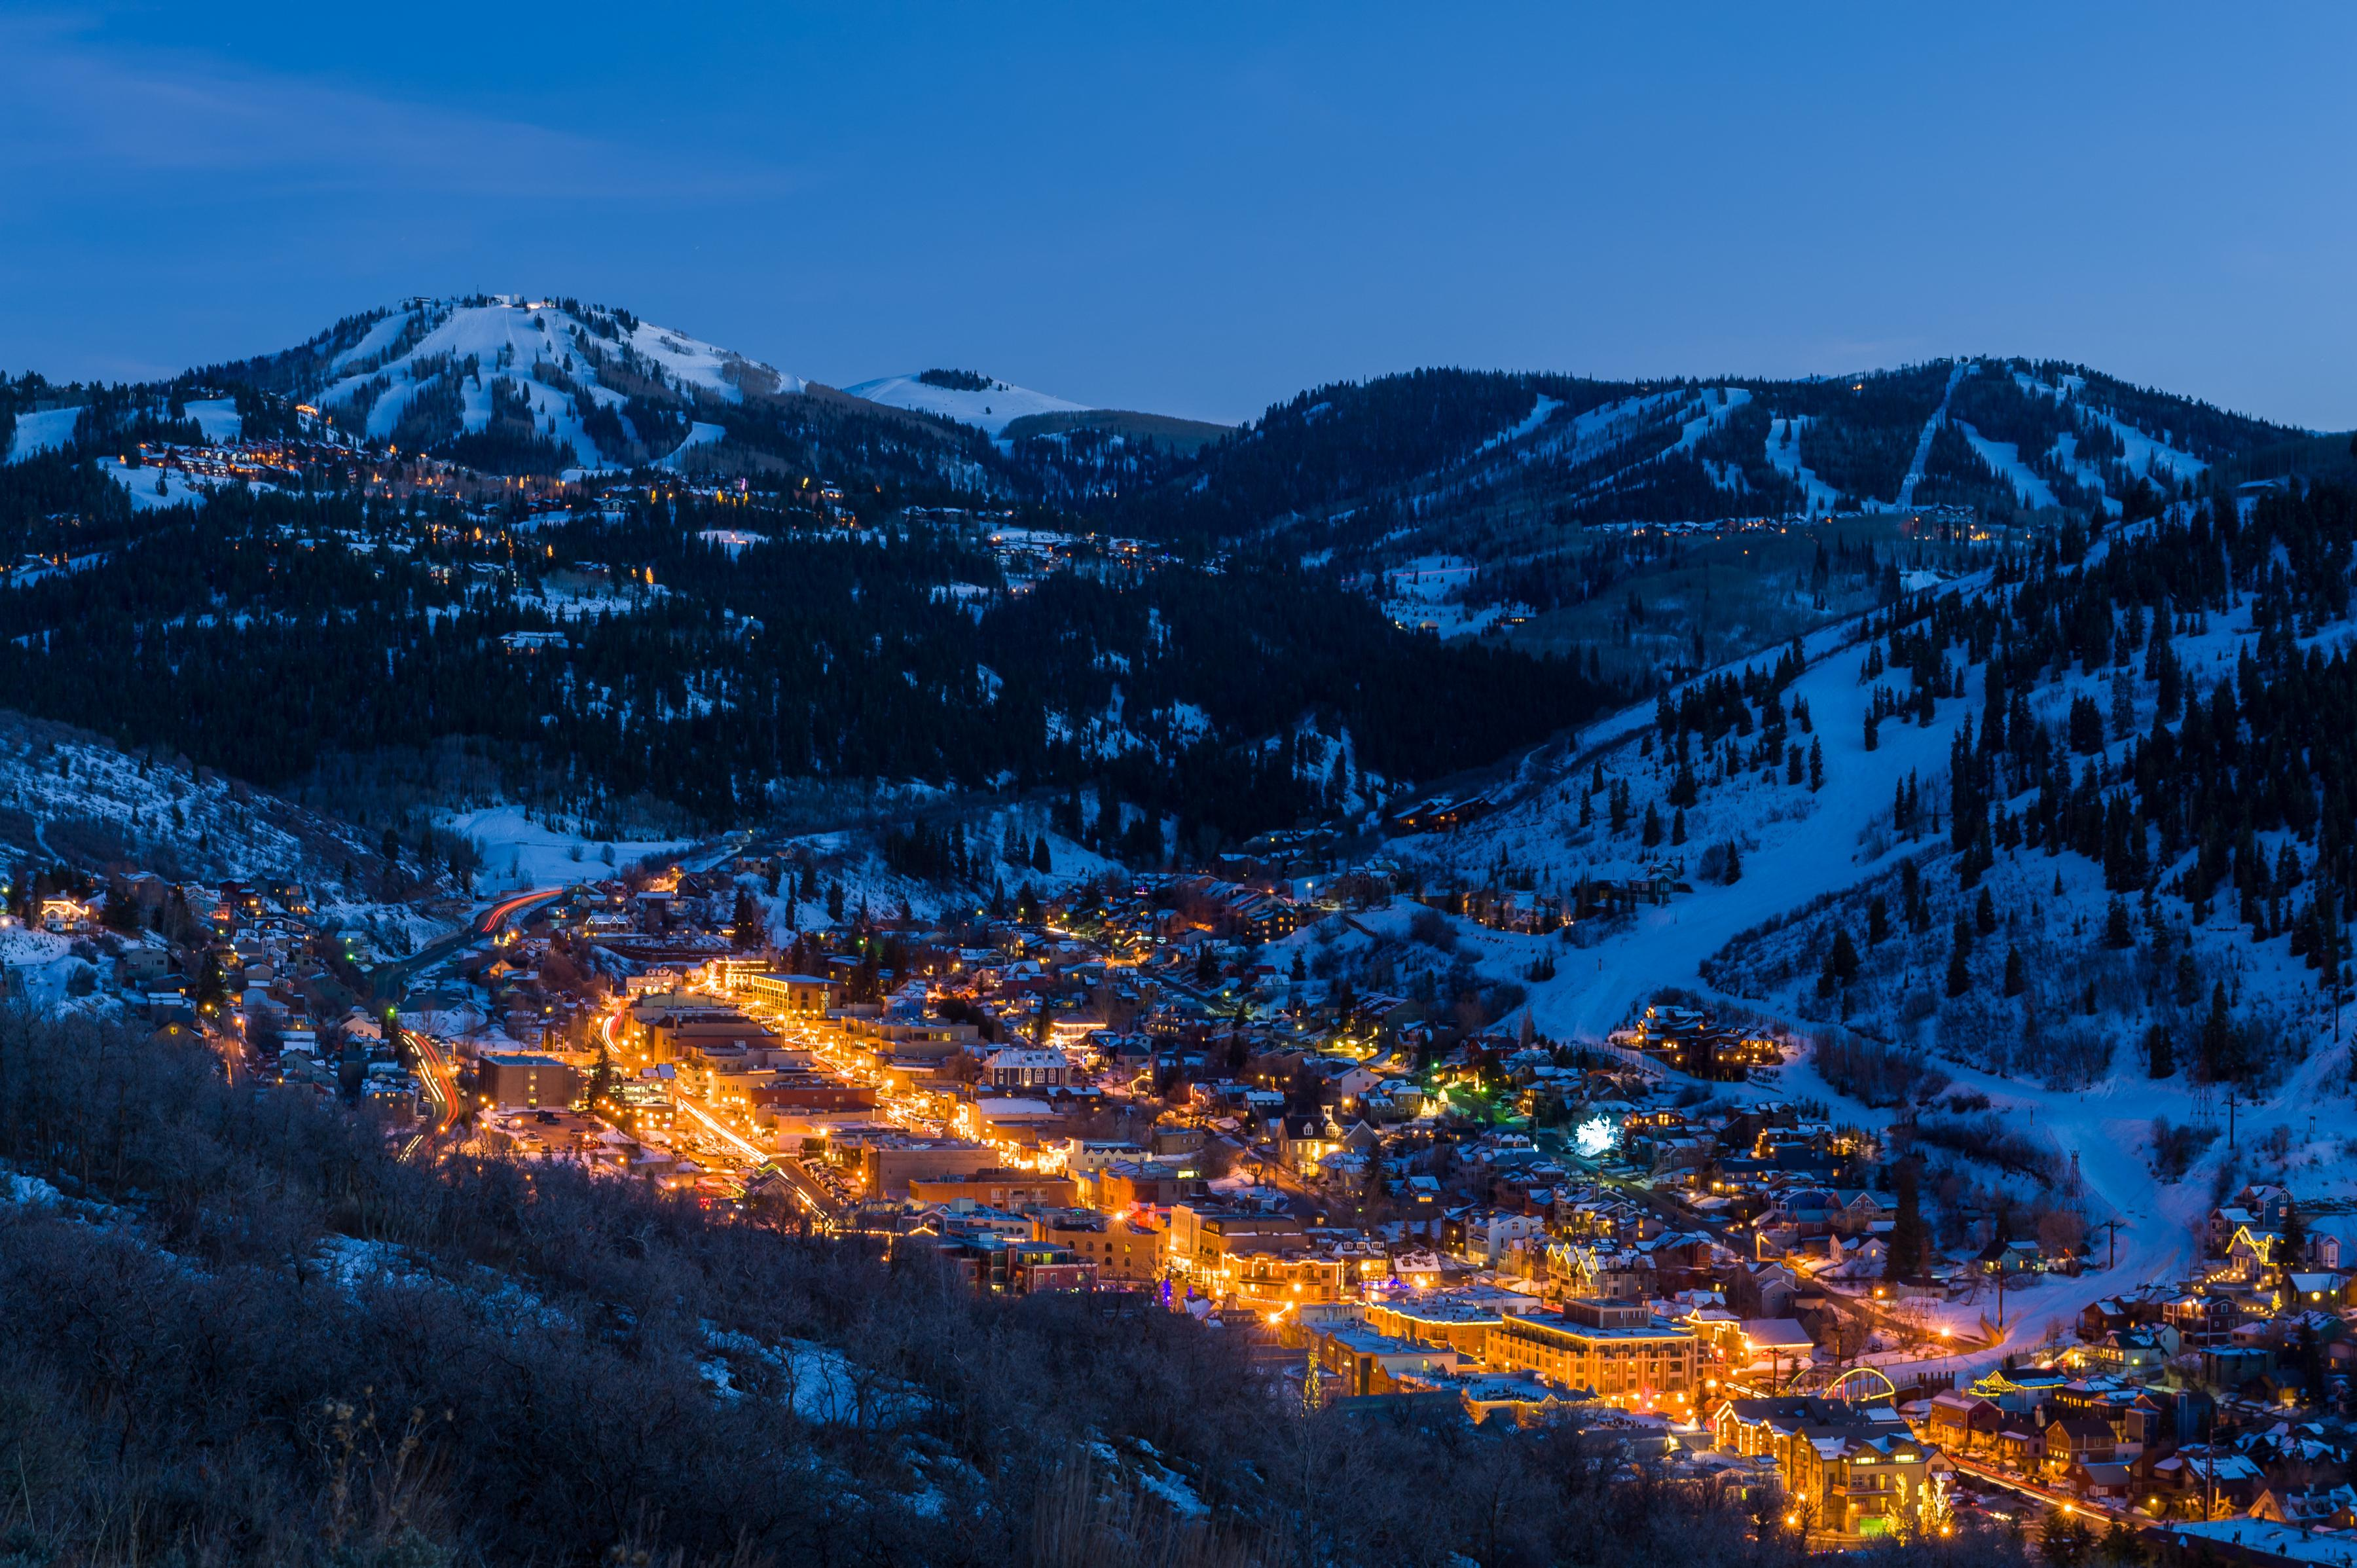 Explore a variety of restaurants and shops in downtown Park City.